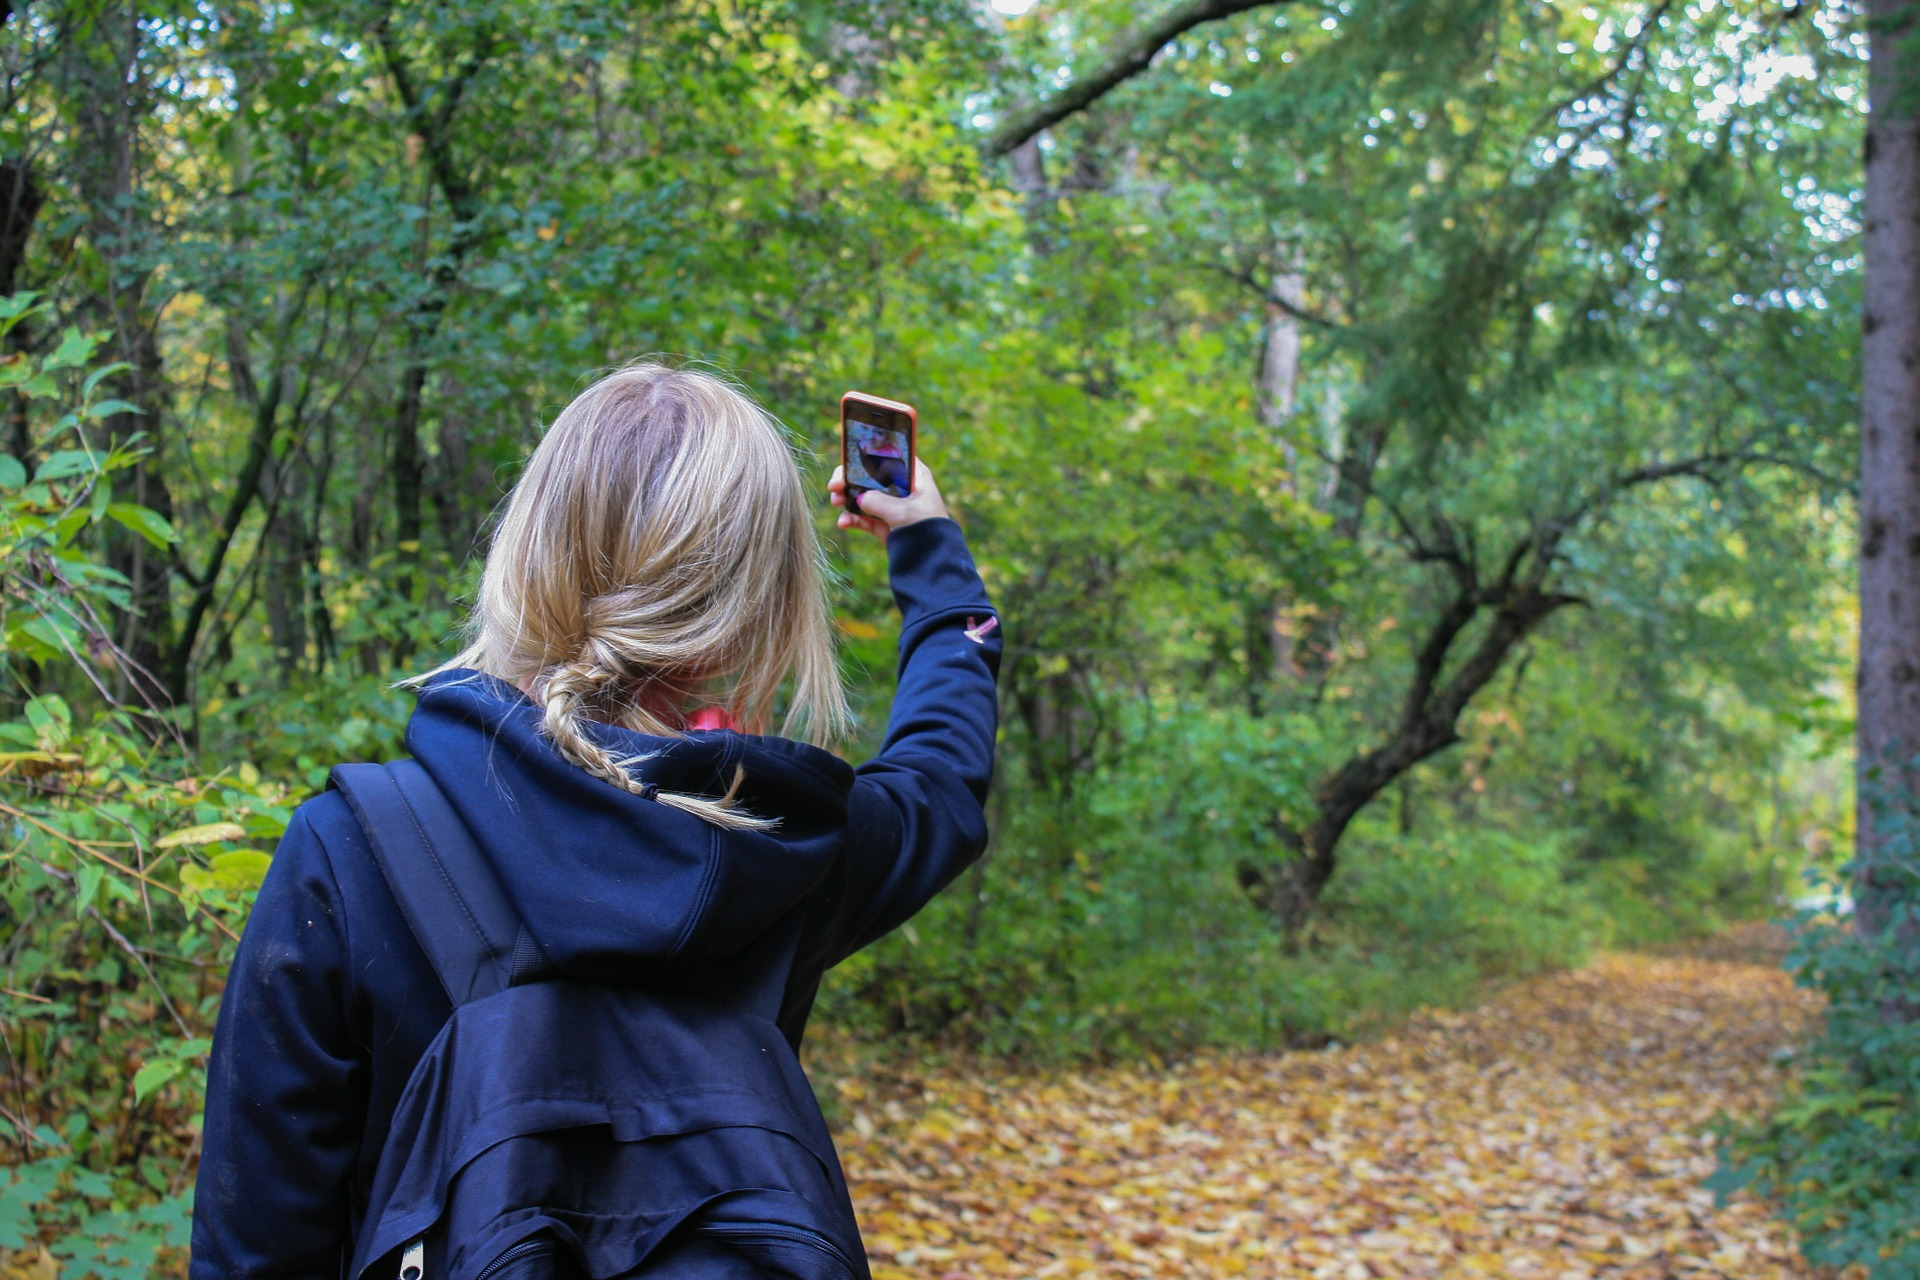 """How to construct an """"Outdoors-y"""" identity. Show the world you getting back to Nature with your iPhone."""